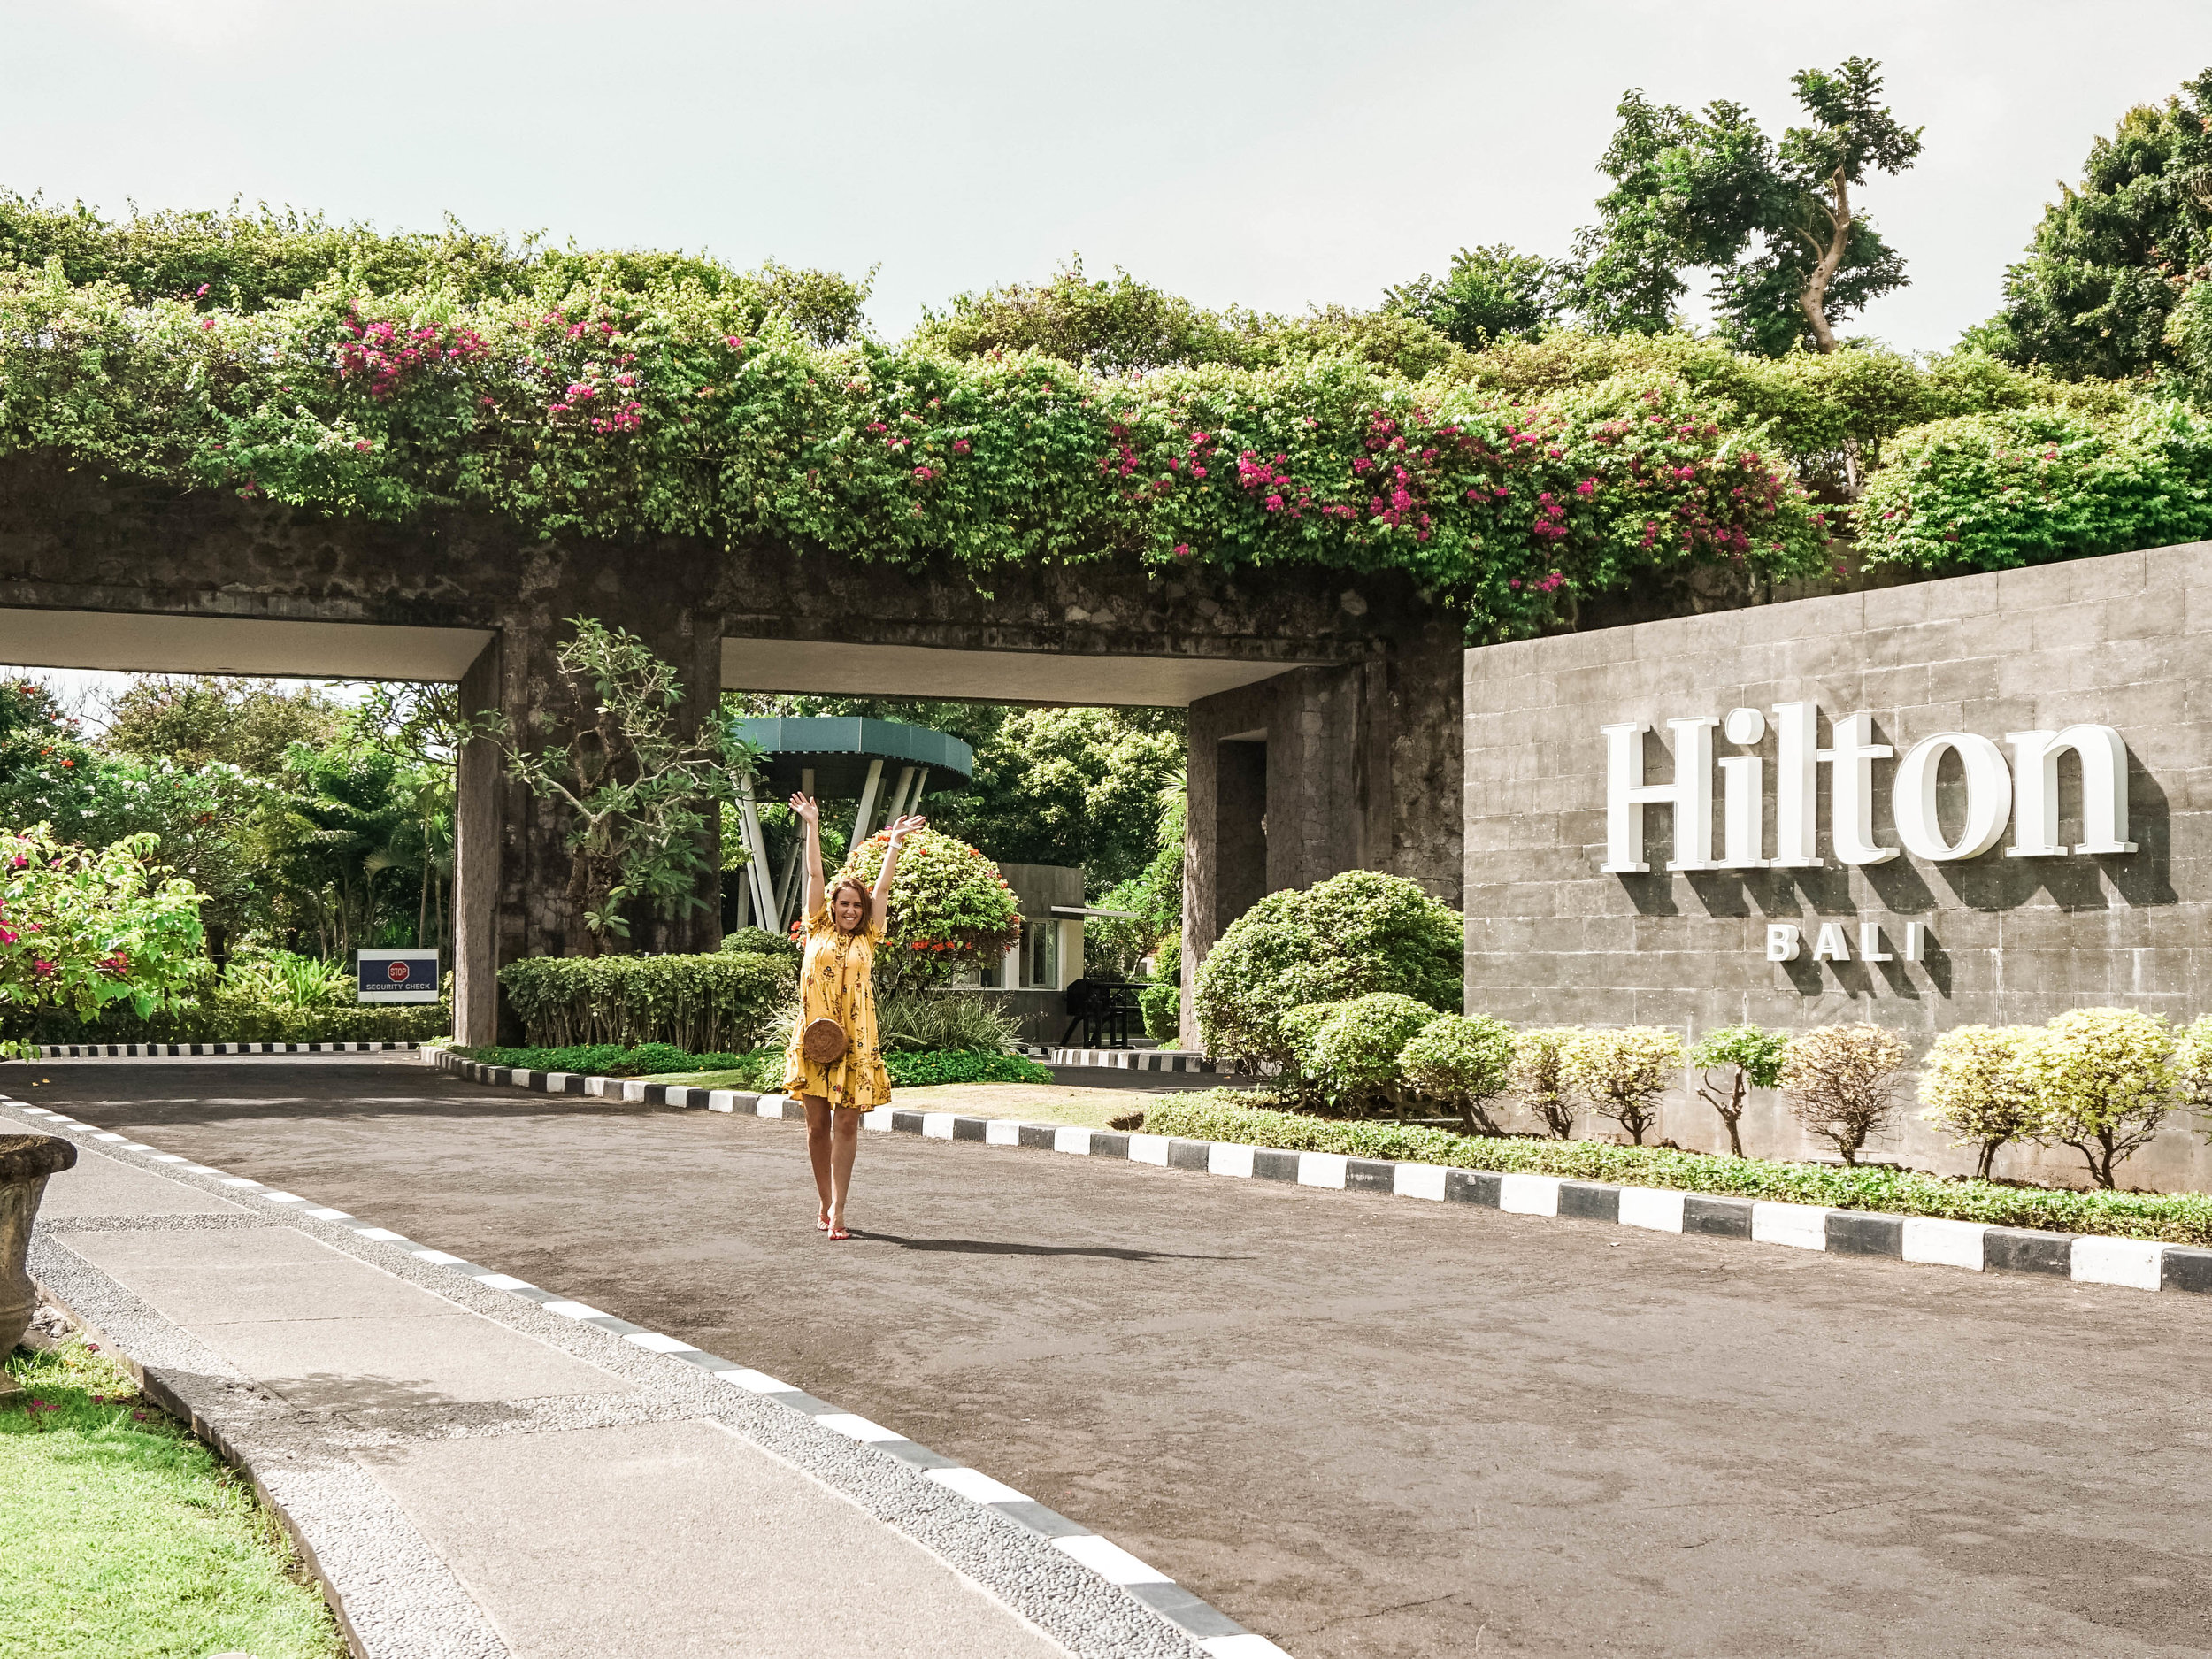 Entry to the Hilton Bali Resort - the prettiest hotel entrance ever!